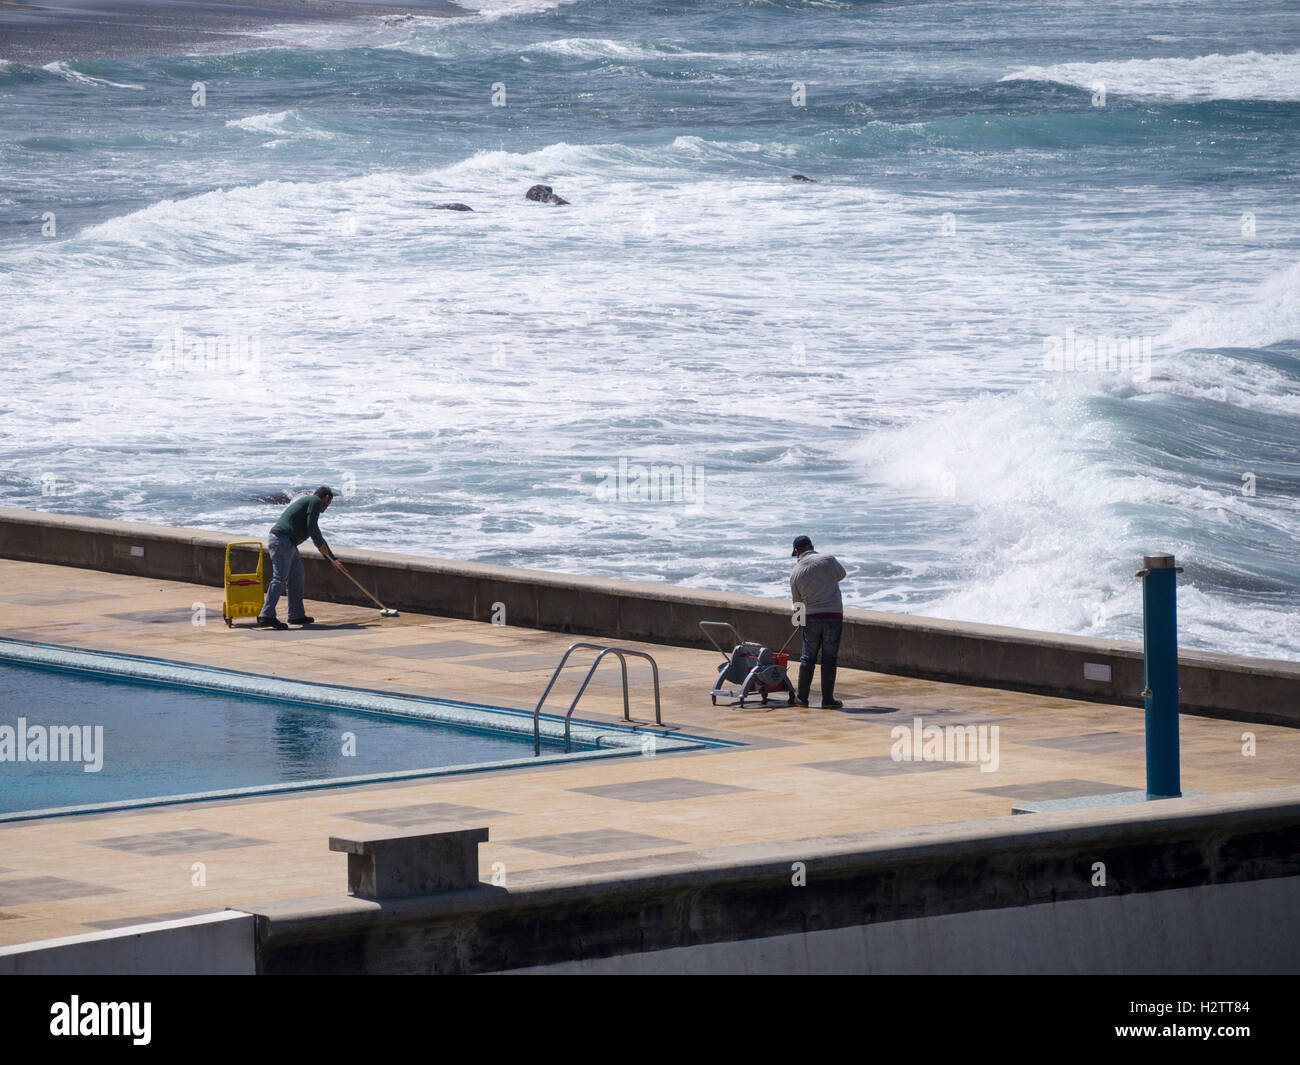 Cleaning Up the Pool. Two workmen scrub the deck of an oceanside swimming pool while behind them large breakers - Stock Image